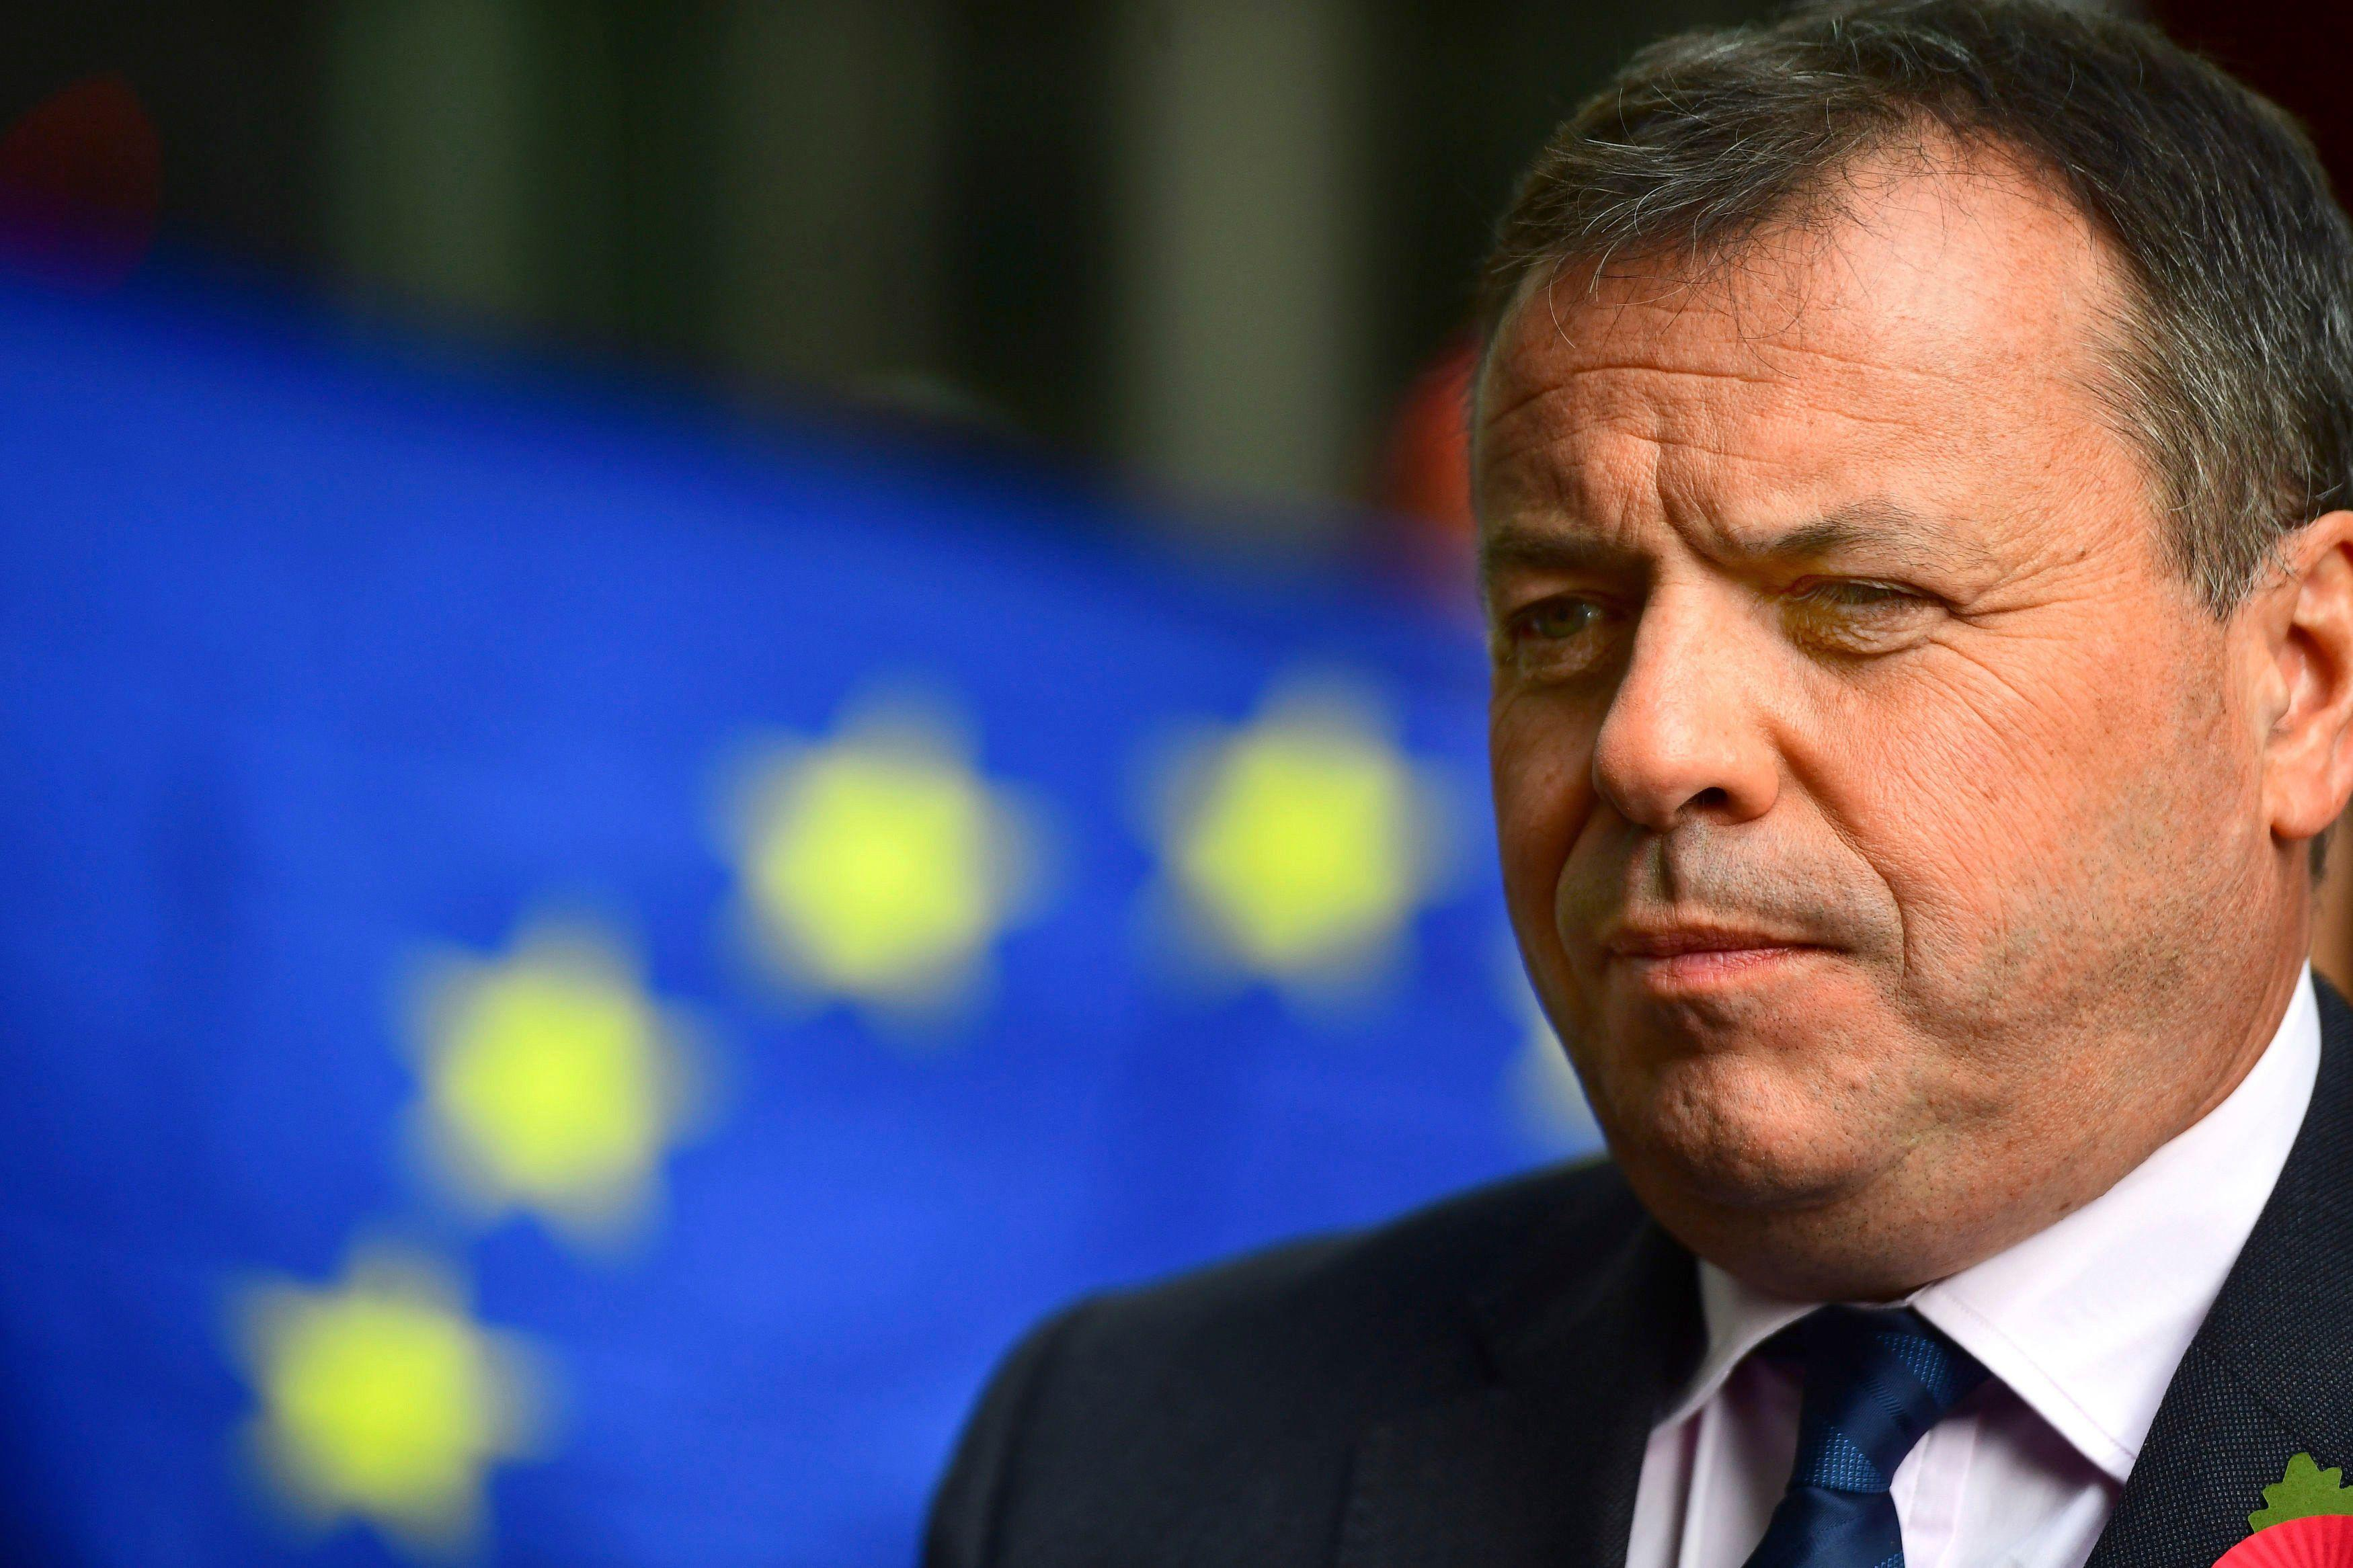 Leave campaigner and businessman Arron Banks, centre, speaks to the media outside BBC Broadcasting House in London, after appearing on the Andrew Marr show, in London, Sunday, Nov. 4, 2018. Britain's National Crime Agency is investigating a main financial backer of the campaign to get Britain out of the European Union over suspected illegal funding during the country's EU membership referendum, authorities said Thursday. (Victoria Jones/PA via AP)